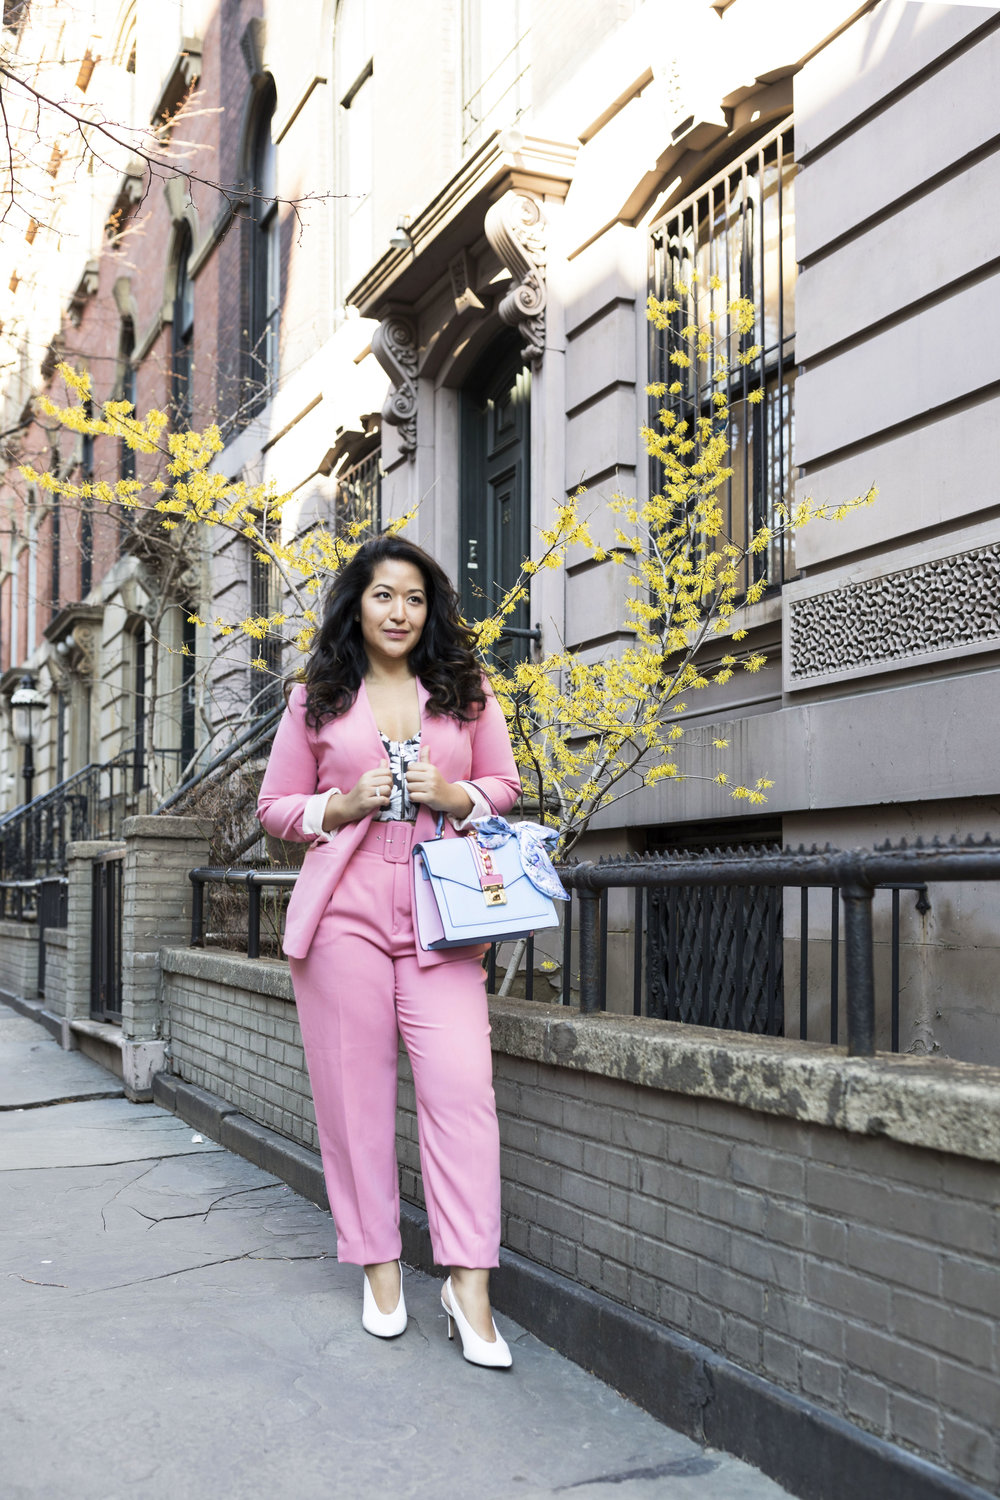 Pant Suit Spring Outfit Trend- Pink Blazer and Pink Pants